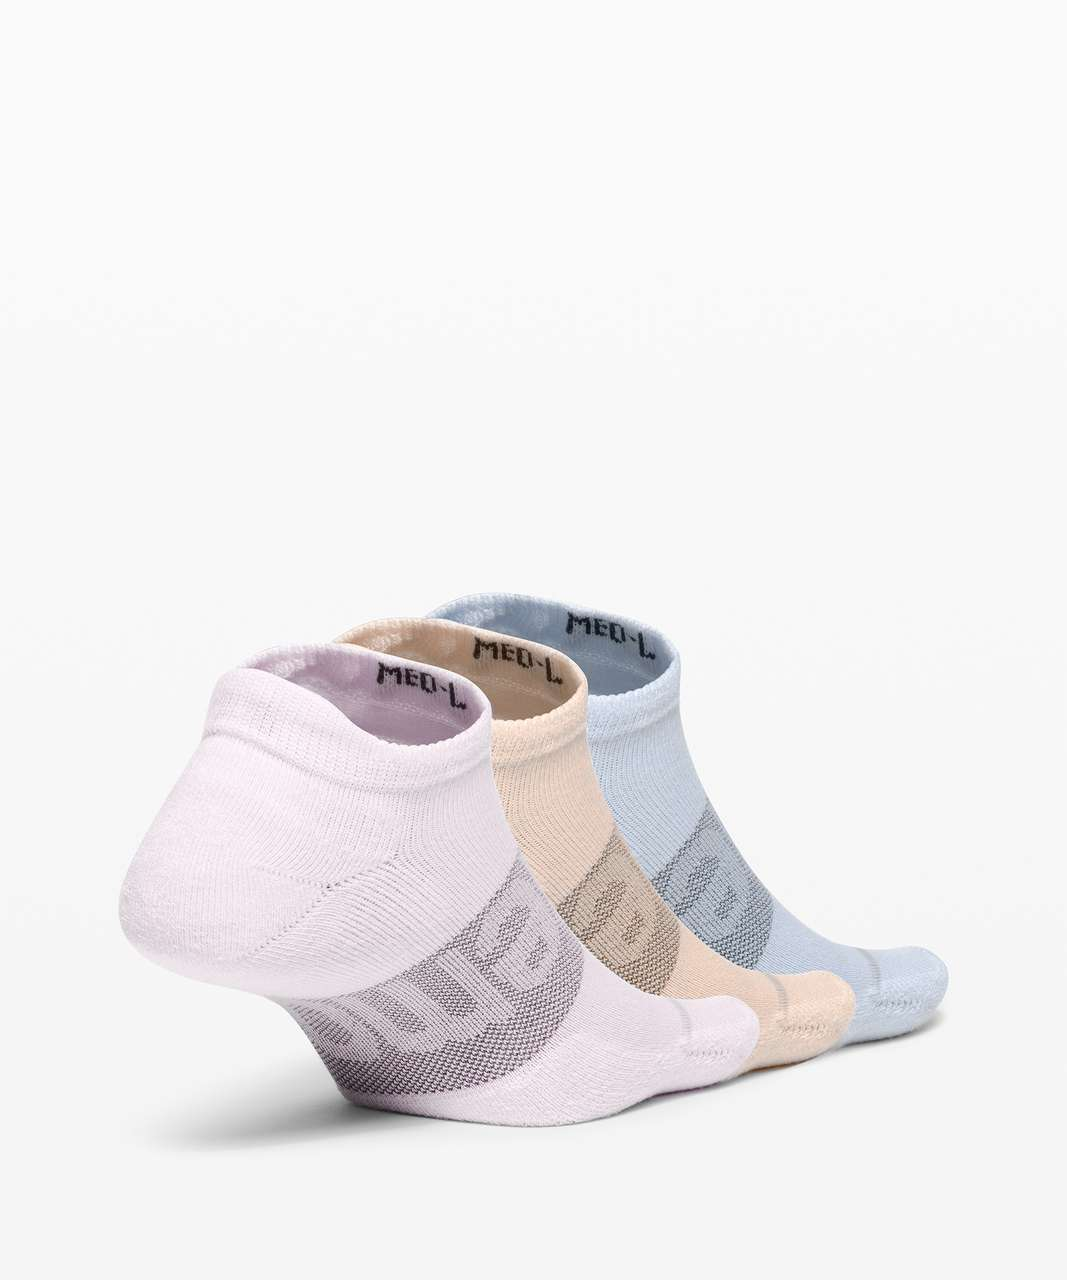 Lululemon Daily Stride Low Ankle Sock *3 Pack - Feather Pink / Chambray / Gold Buff